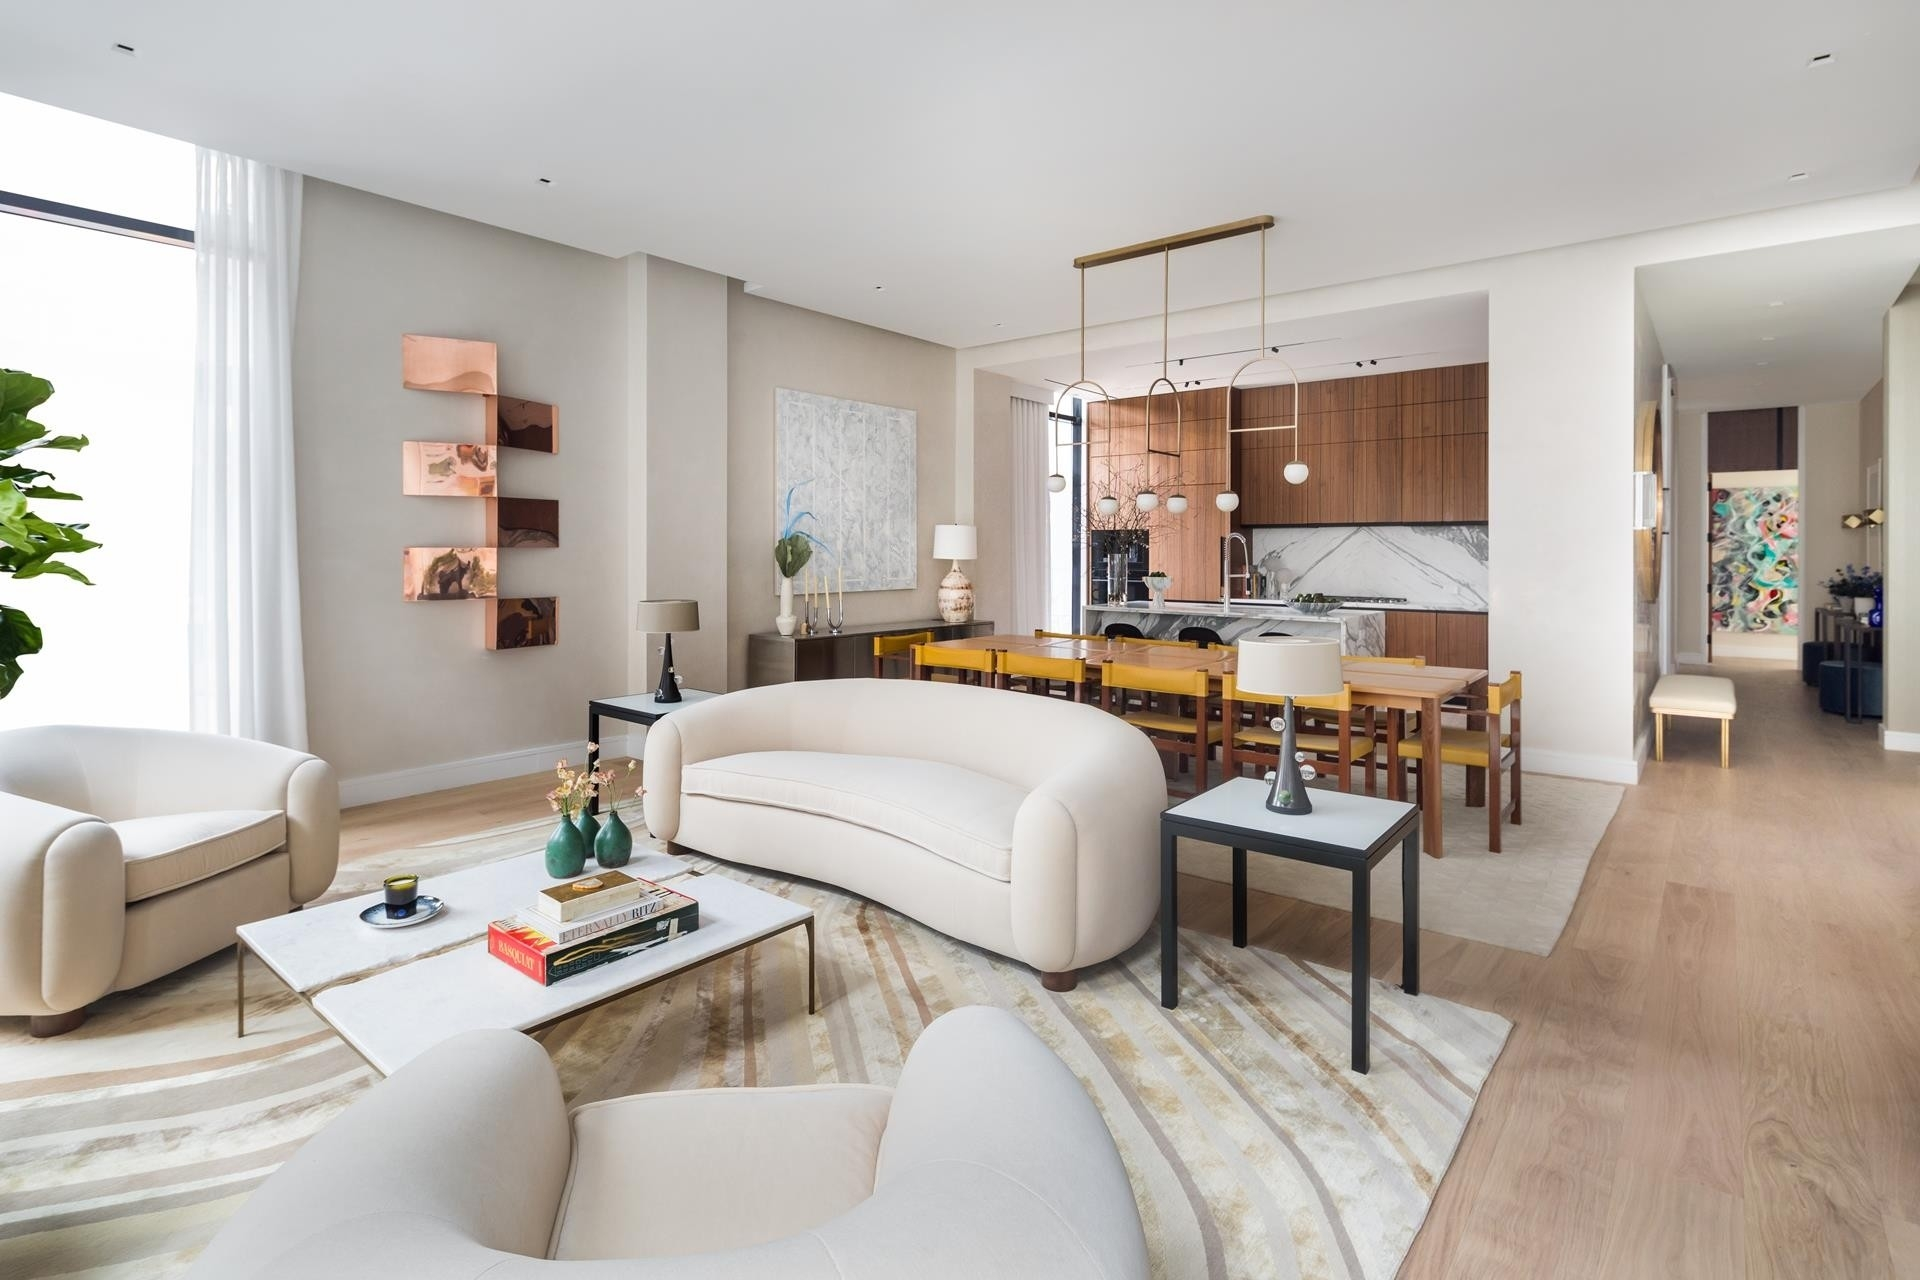 2. Condominiums for Sale at 111 Leroy St, 7 West Village, New York, NY 10014